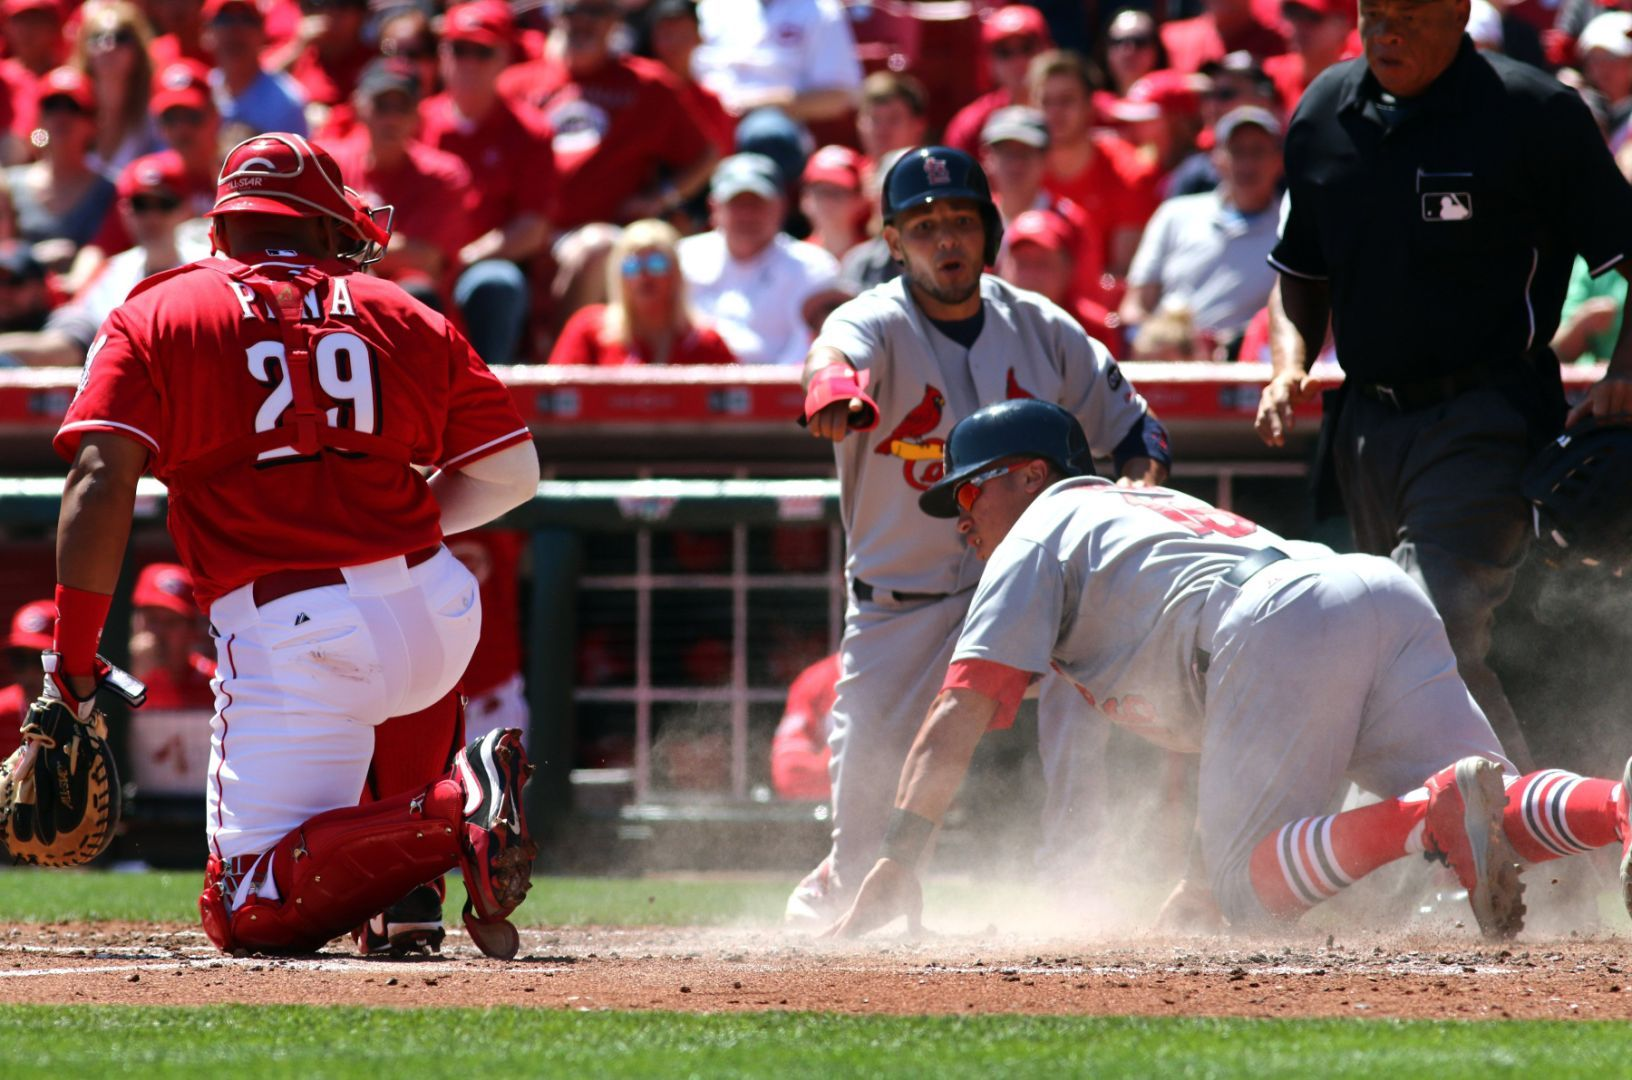 Reds manager calls Heyward slide 'dirty'